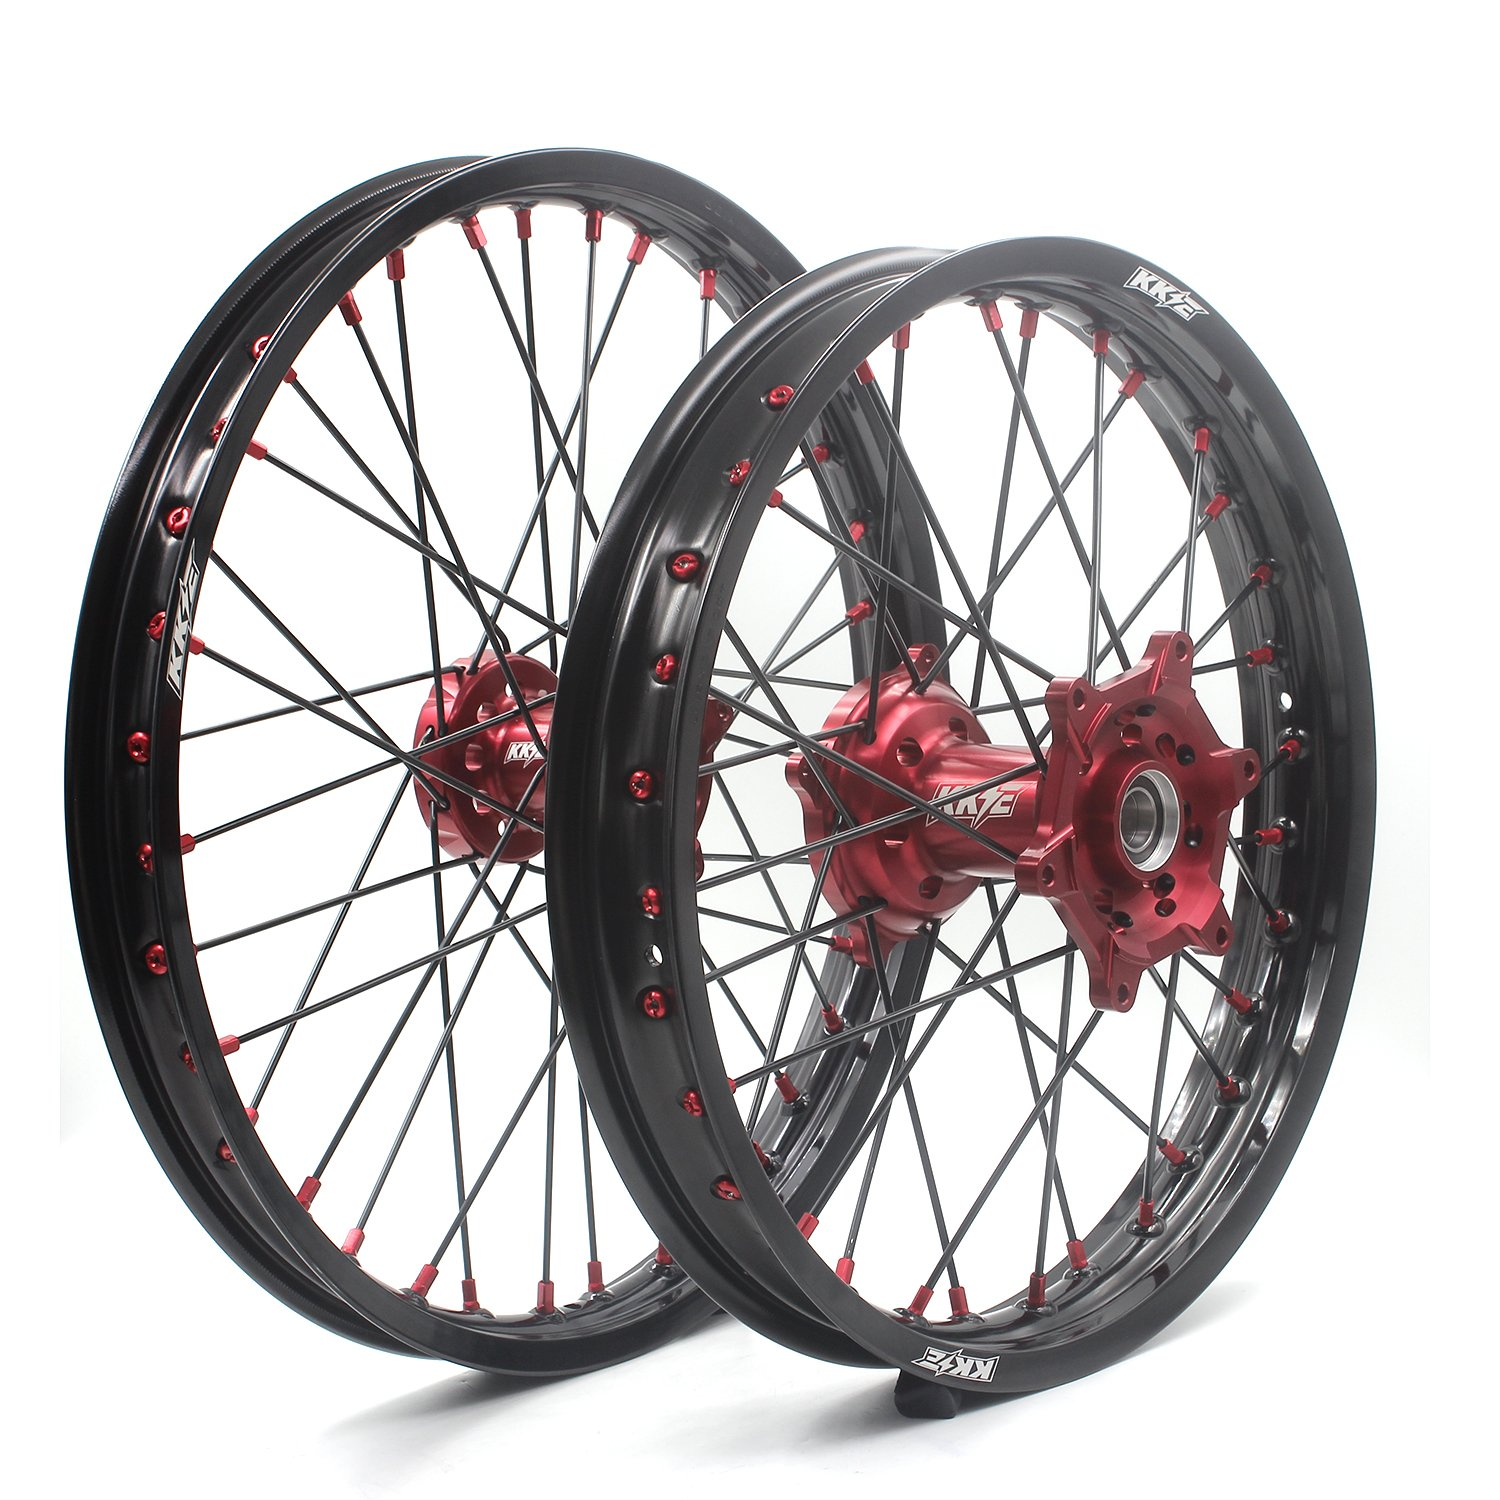 KKE HONDA MX CNC Wheel 21/19 CRF450R 13-17 CRF250R 14-17 Red Hub